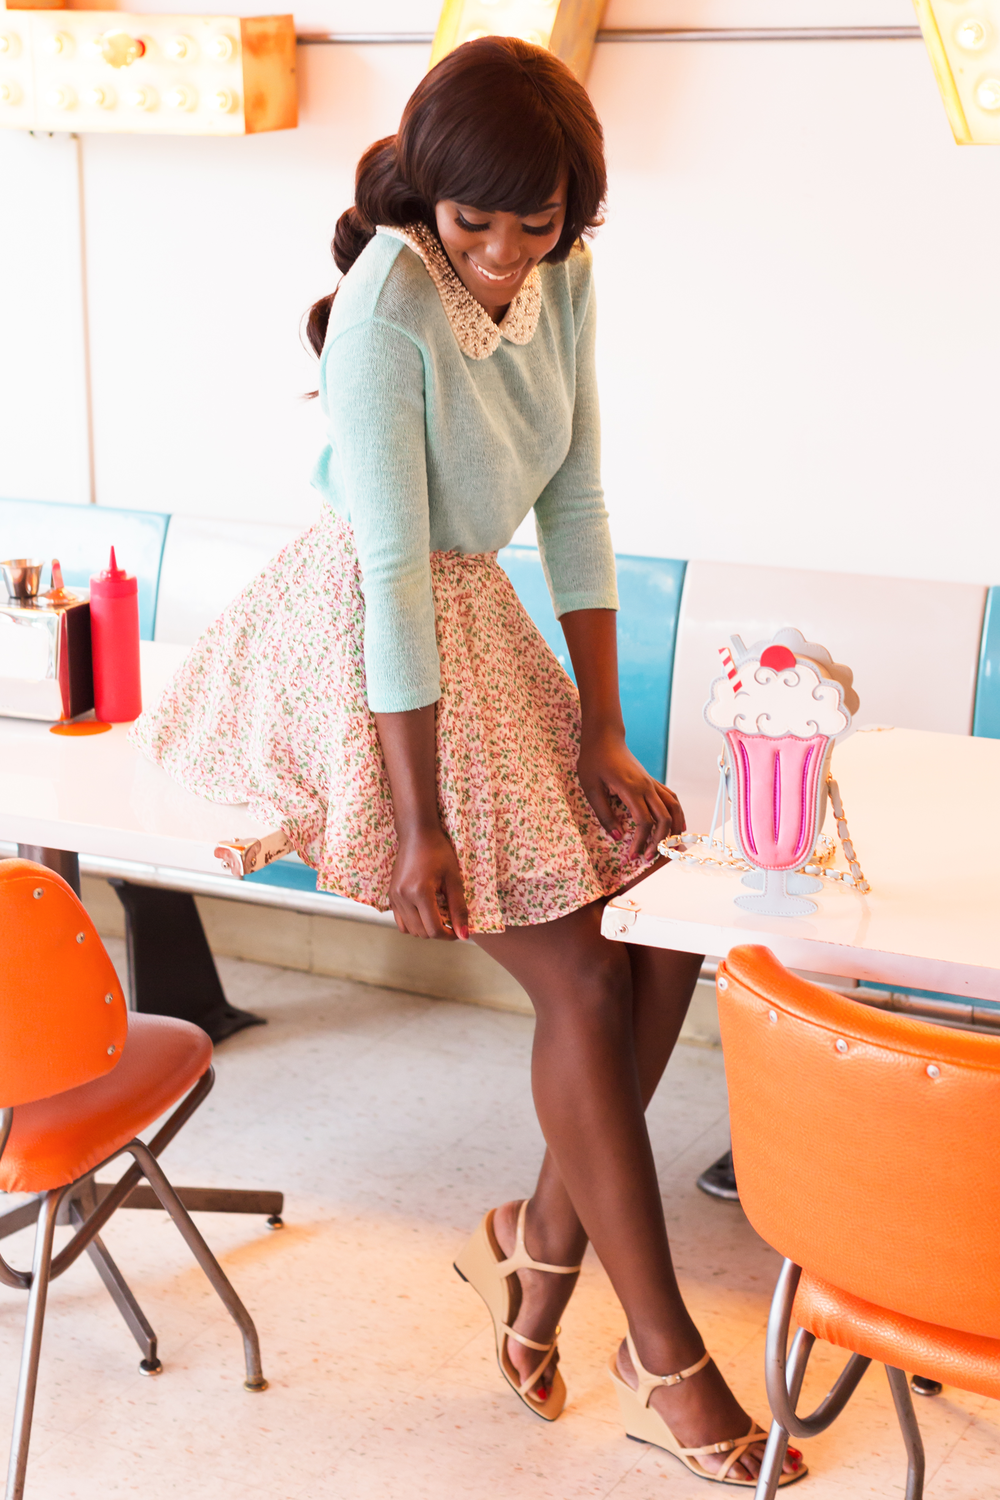 Top: Moon Collection; Skirt: Wear The Canvas; Shoes: Nine & Company; Purse: Shop Jeen